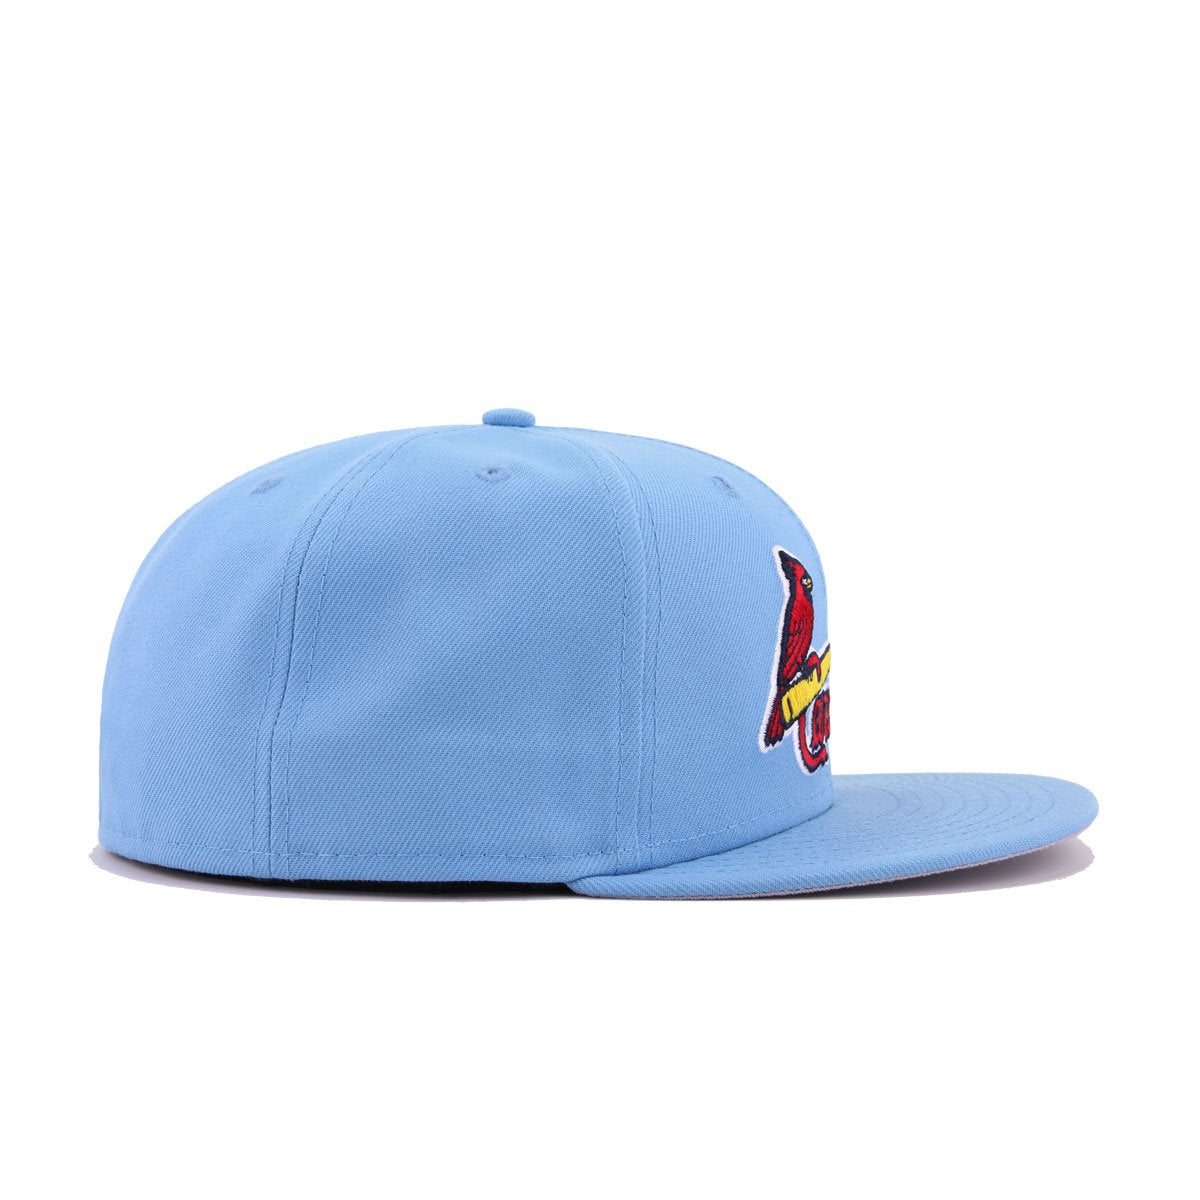 St Louis Cardinals Sky Blue New Era 59Fifty Fitted